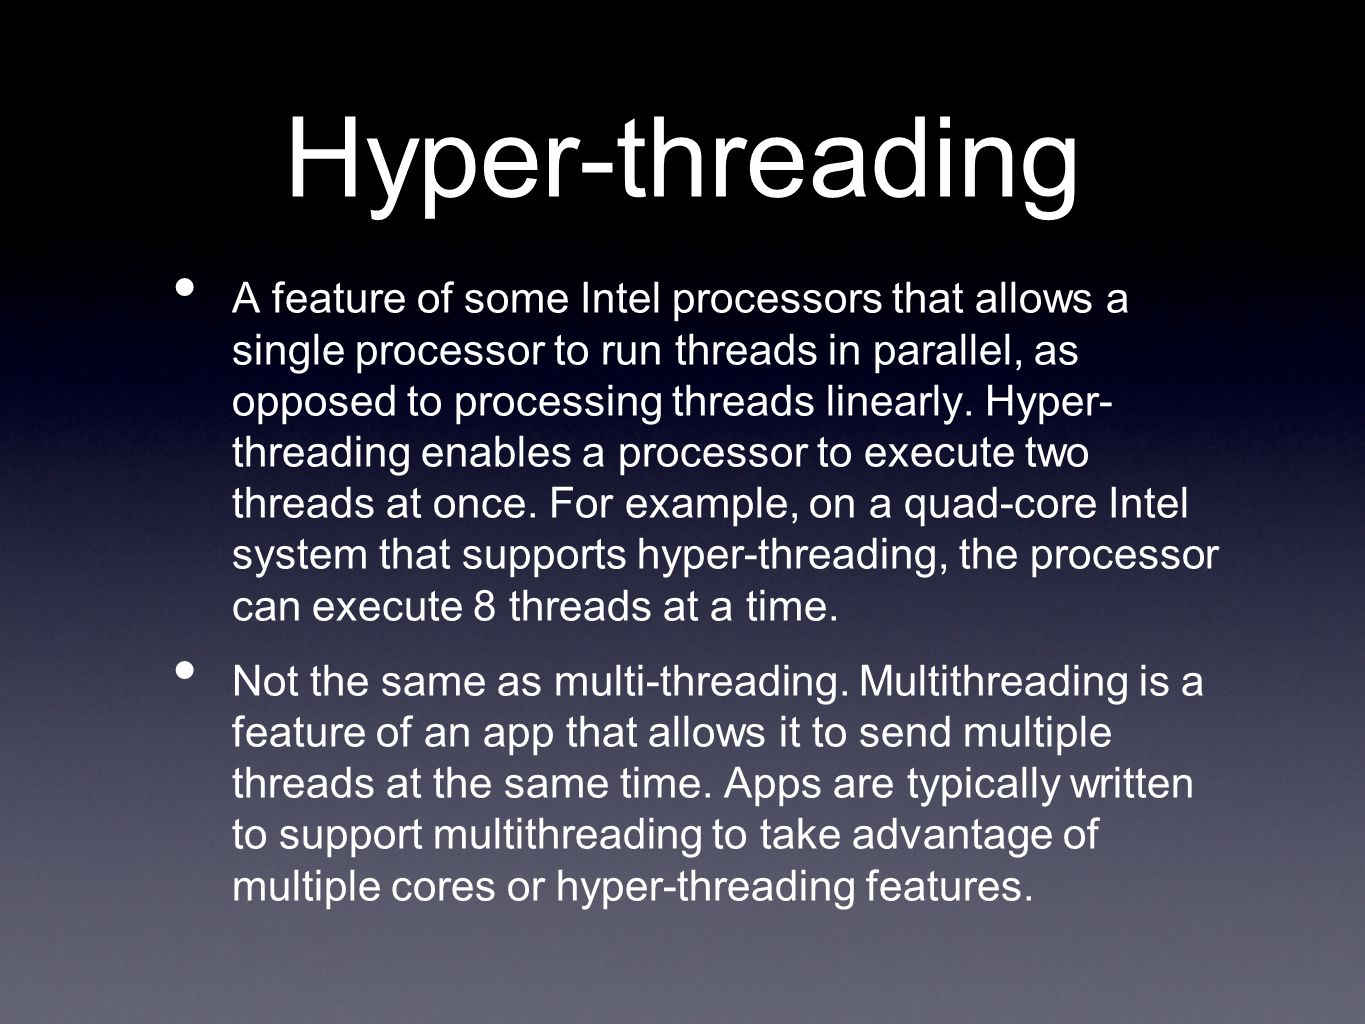 Hyper-threading A feature of some Intel processors that allows a single processor to run threads in parallel, as opposed to processing threads linearl